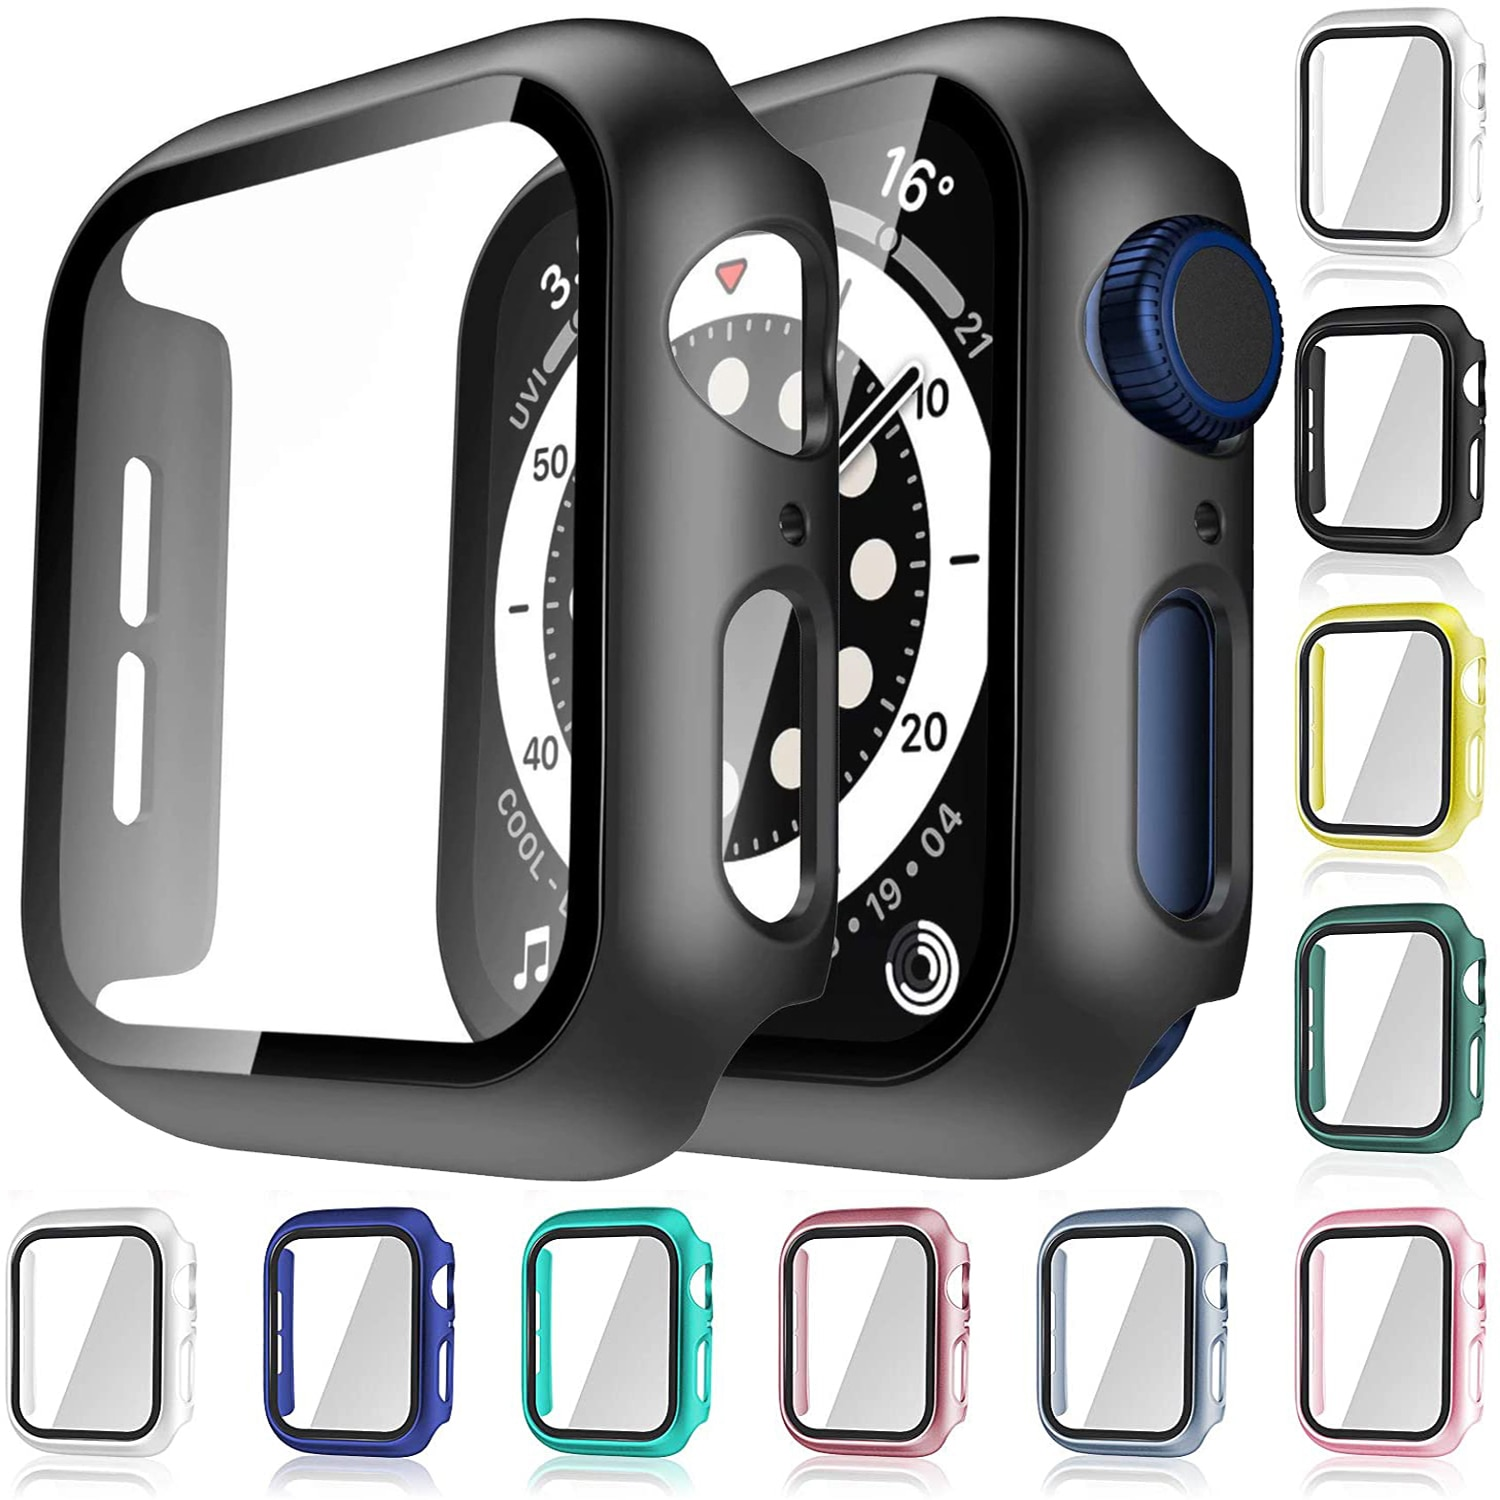 watch cover case for apple watch 6 5 4 3 2 1 se 44mm 42mm 40mm 38mm colorful screen full protector shell for iwatch watch case Glass+Case For Apple Watch Serie 6 5 4 3 2 1 SE 44mm 40mm iWatch Case 42mm 38mm Bumper Screen Protector+Cover Watch Accessorie